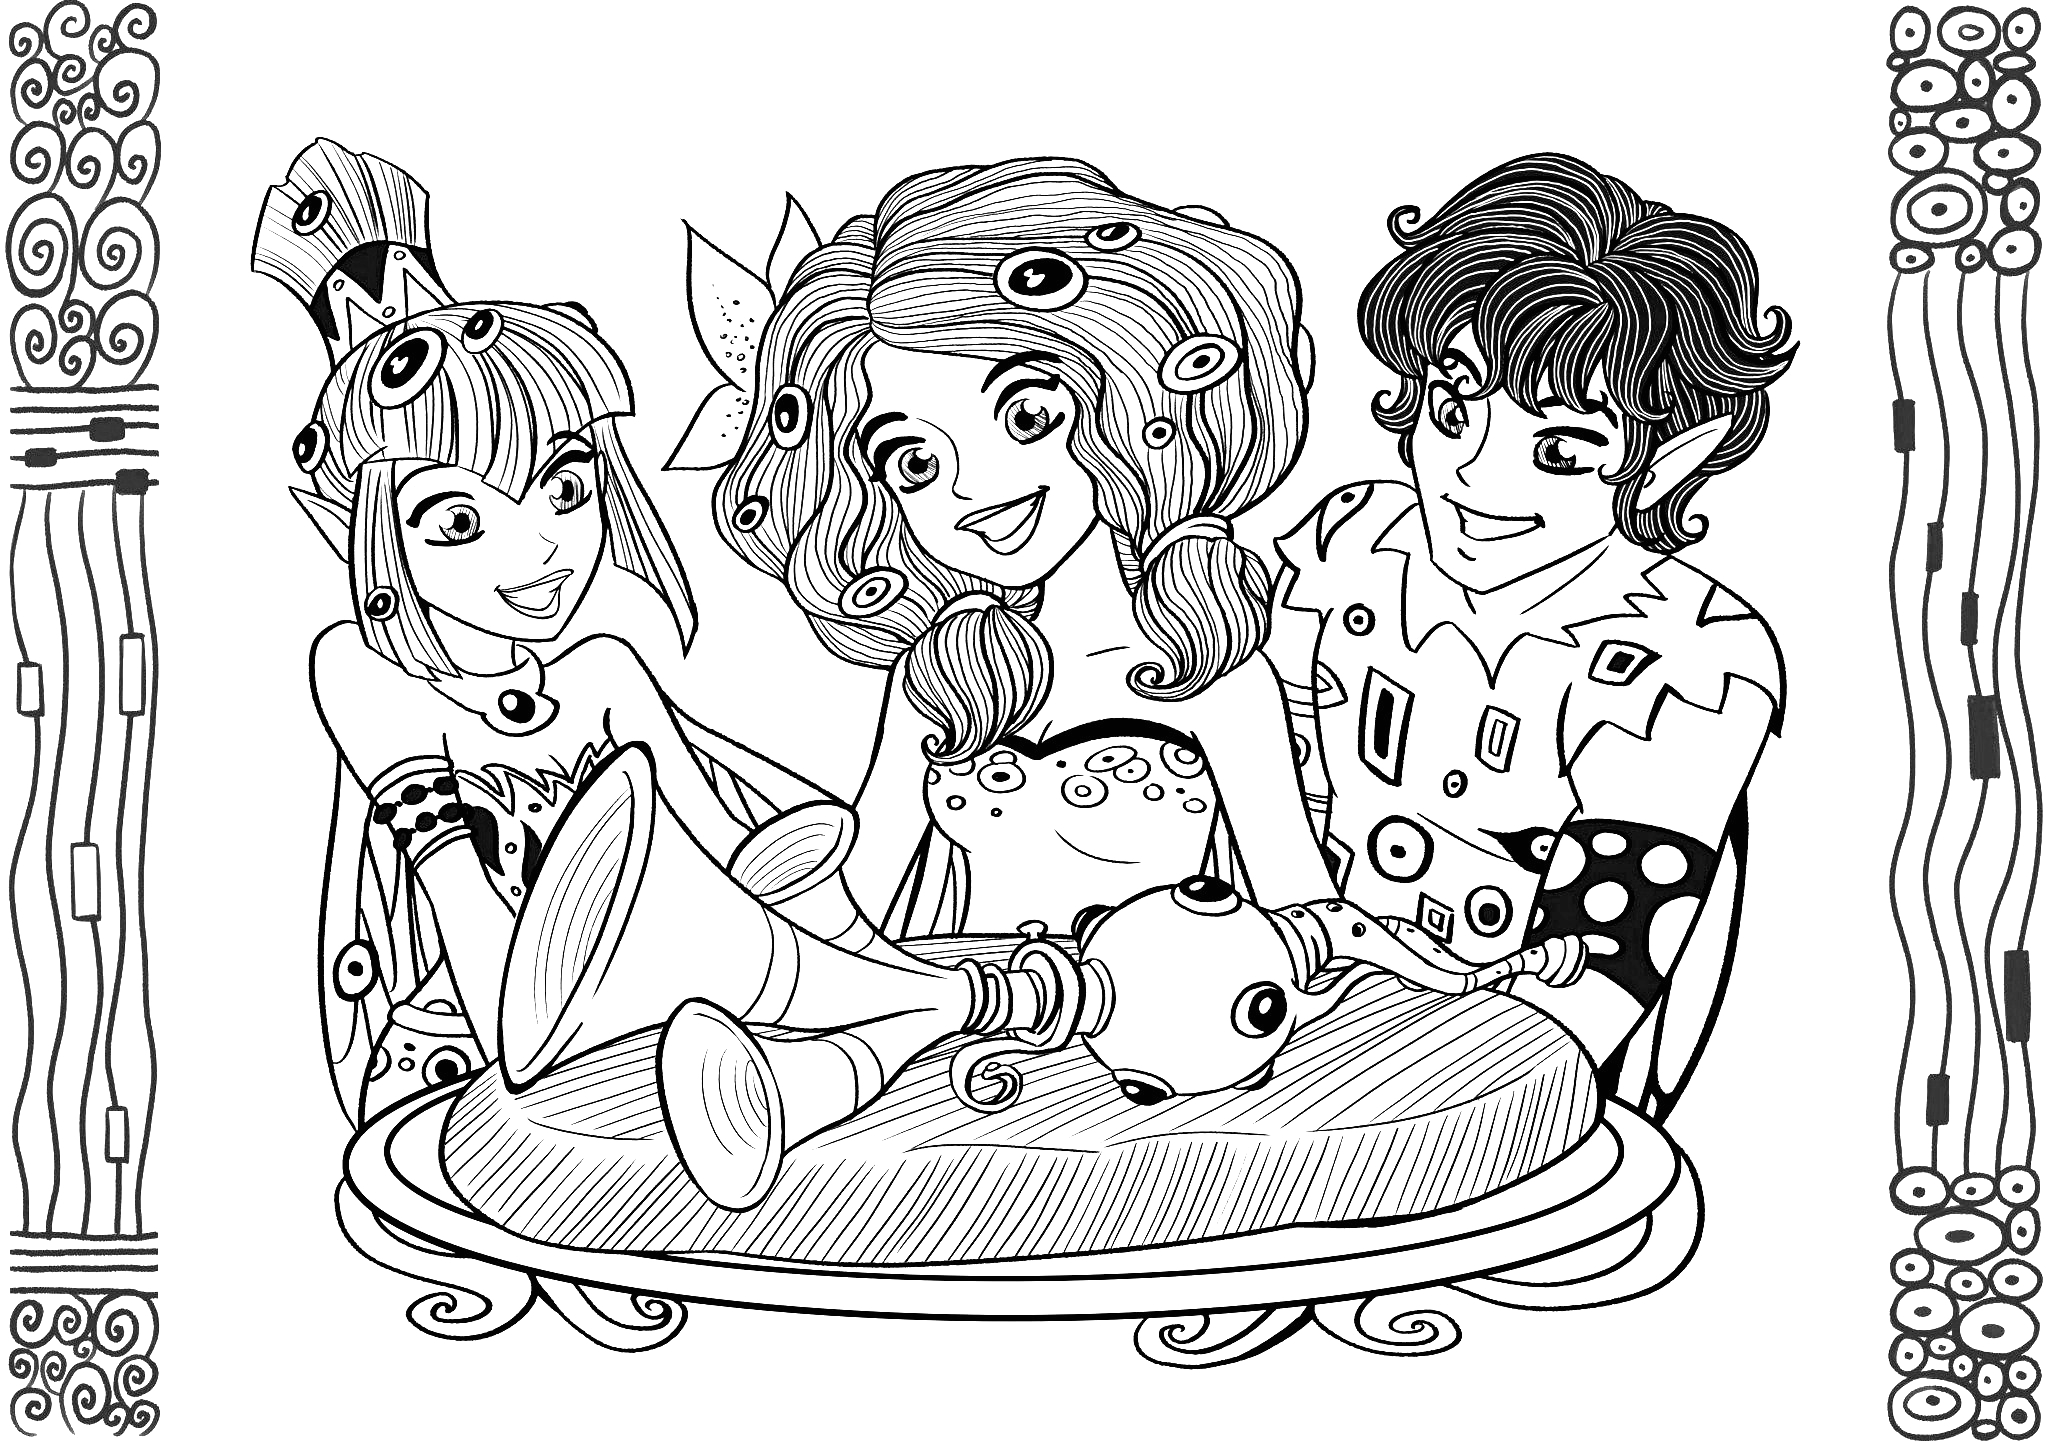 Mia and Me Coloring Pages to Print Mia and Me to Mia and Me Kids Coloring Pages